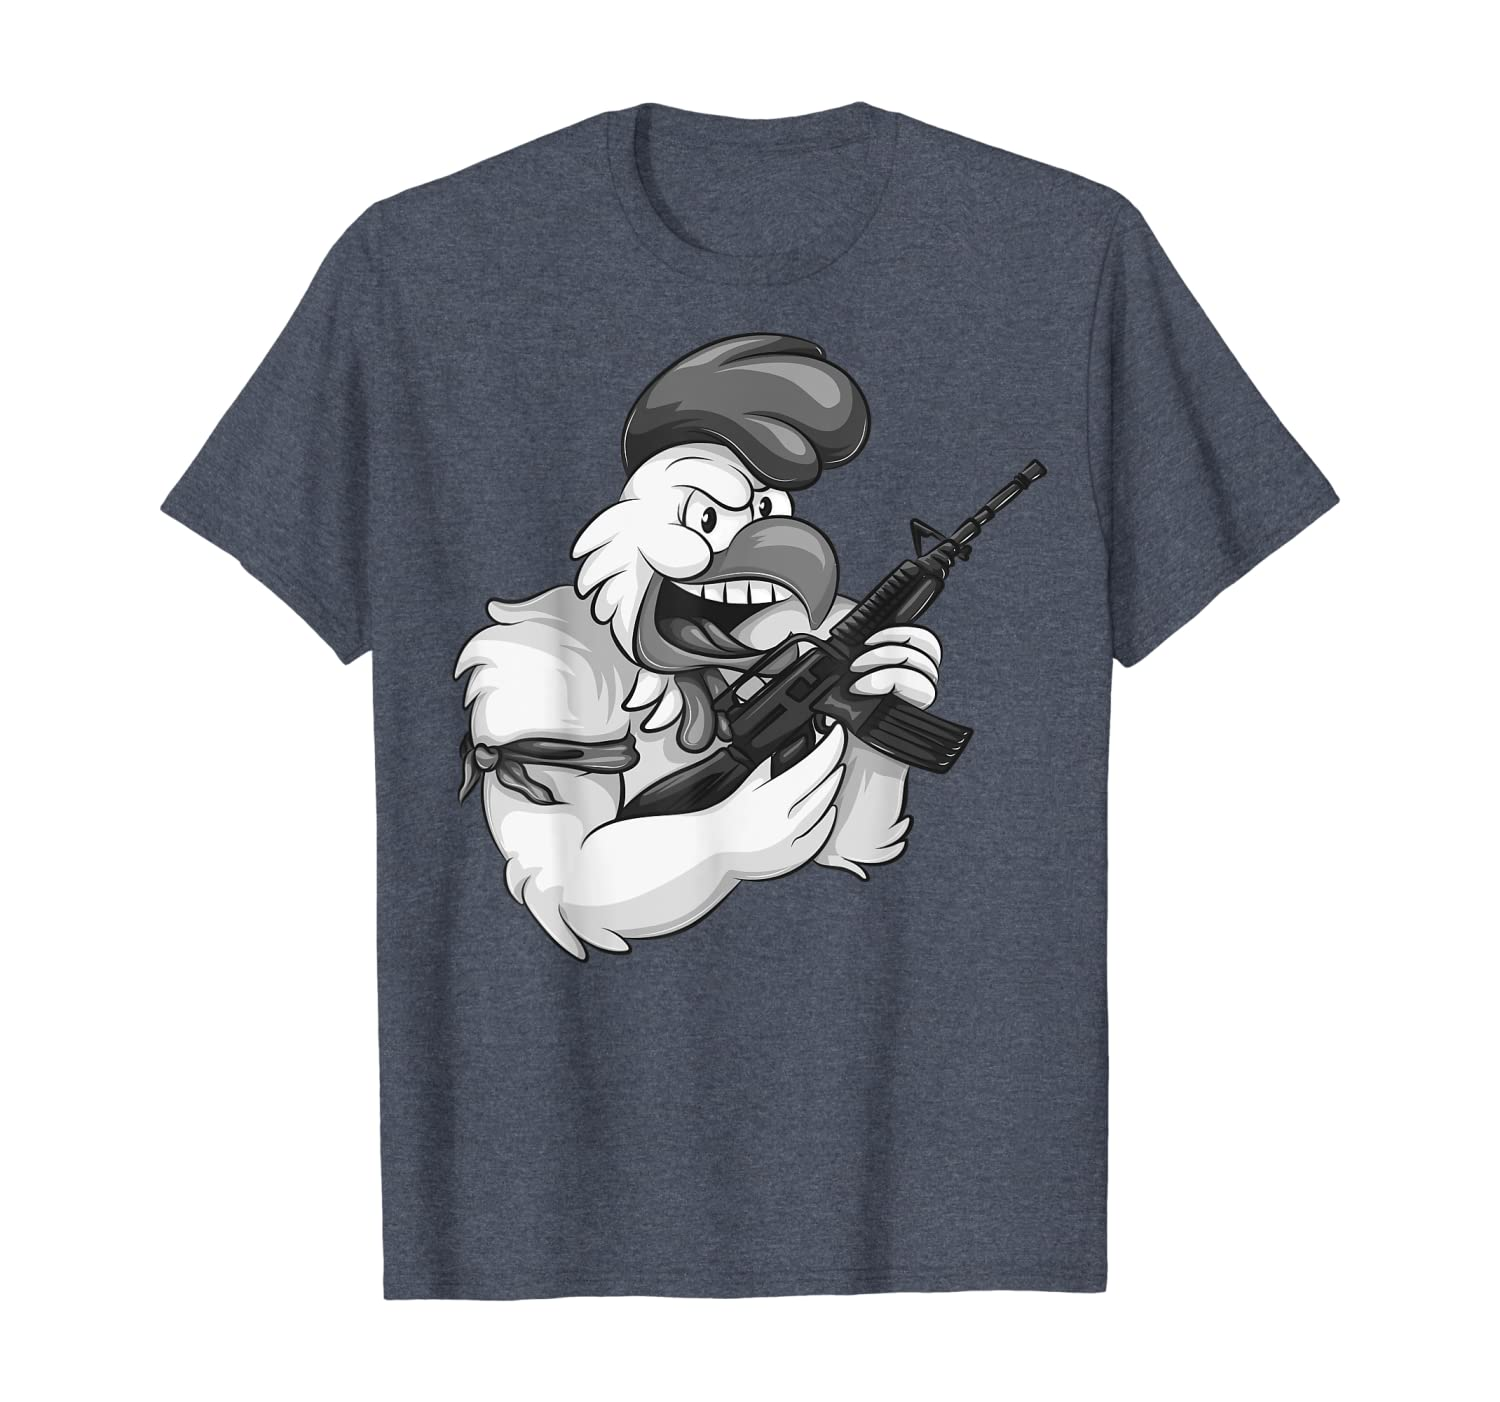 Angry Chicken Cartoon Weaponrooster Funny Gun Farmer Gift T-shirt Unisex Tshirt